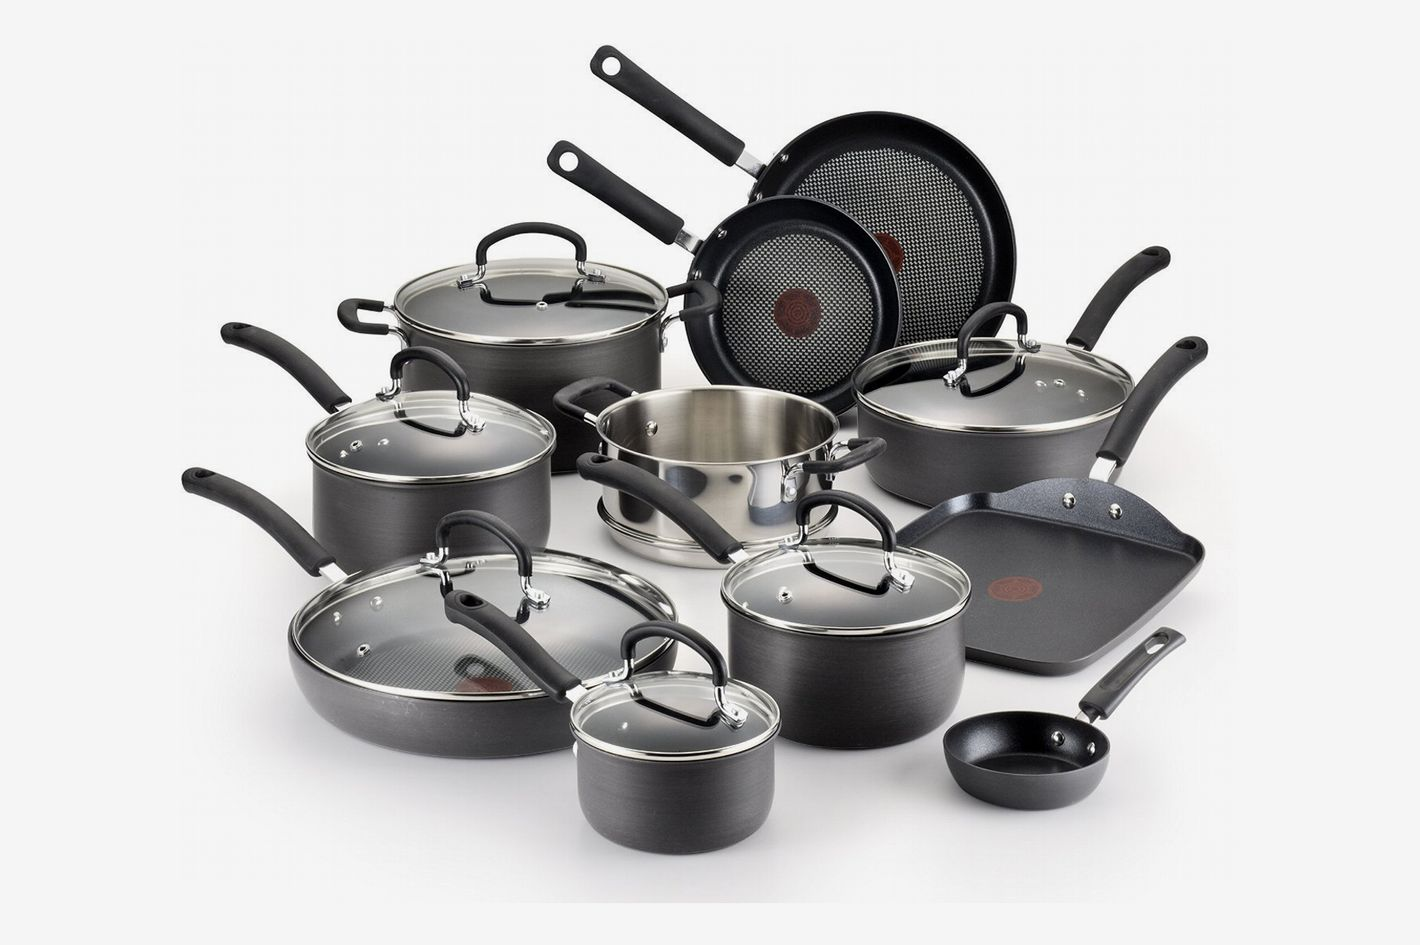 T Fal Hard Anodized Cookware Set Nonstick Pots And Pans 17 Piece